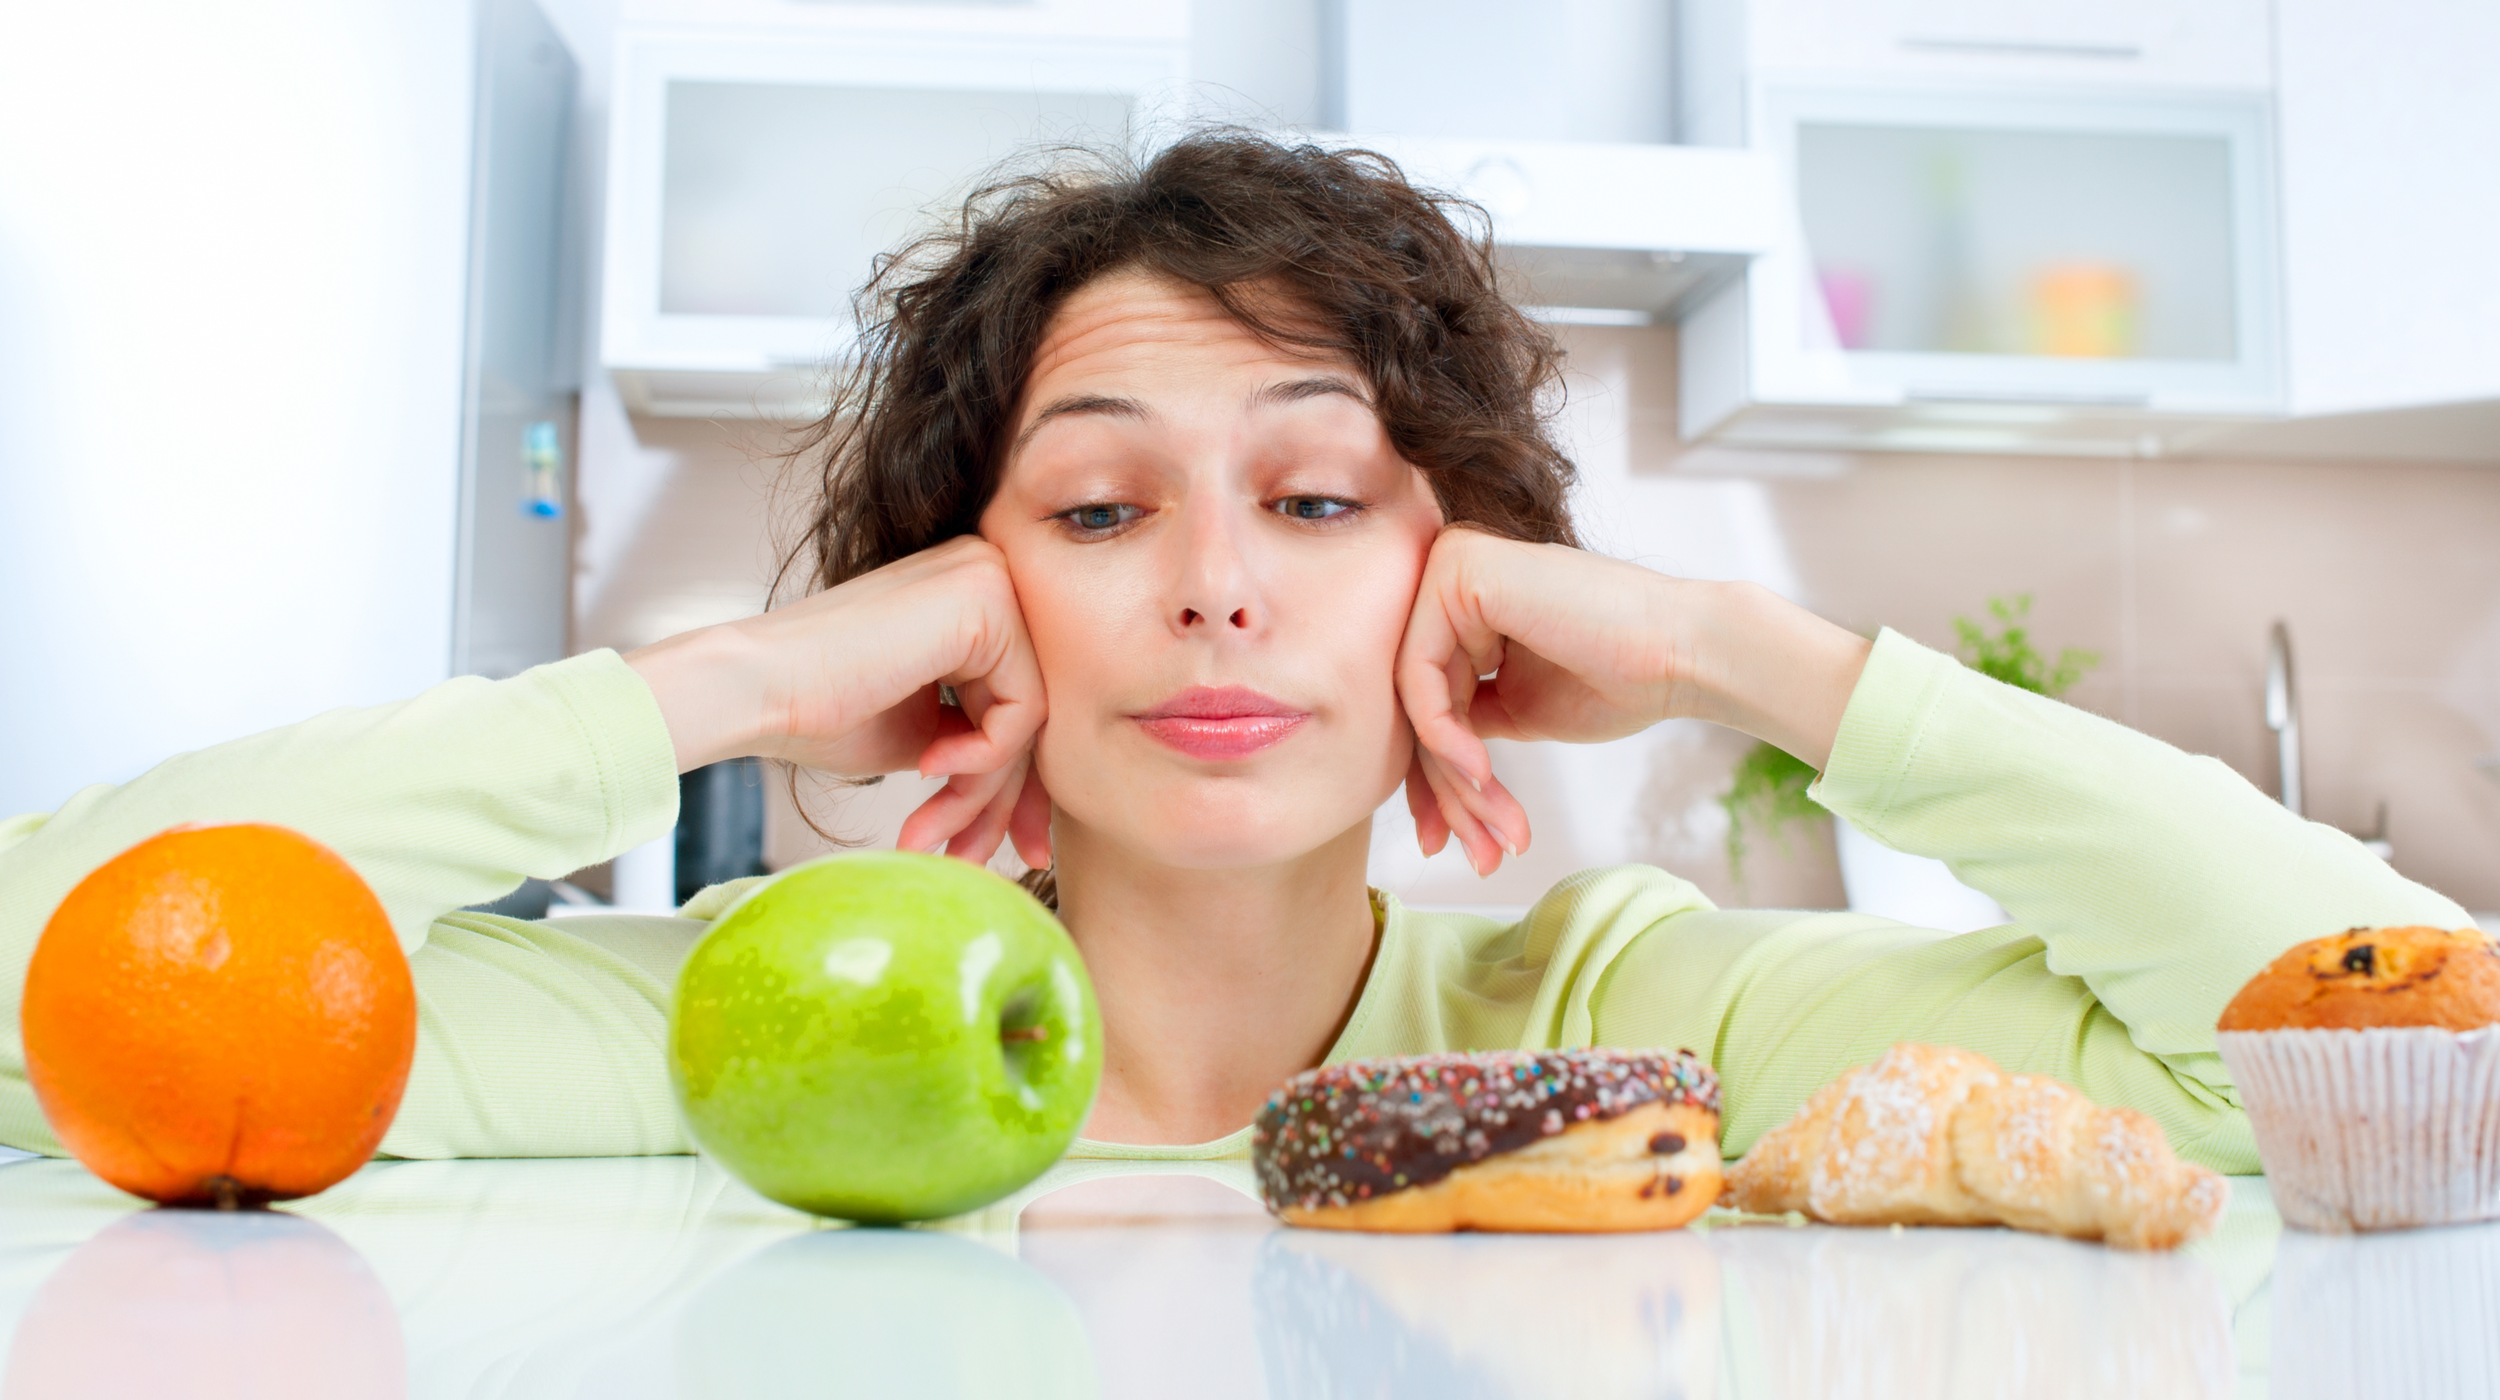 What Type of Diet is Best for Women's Weight Loss?